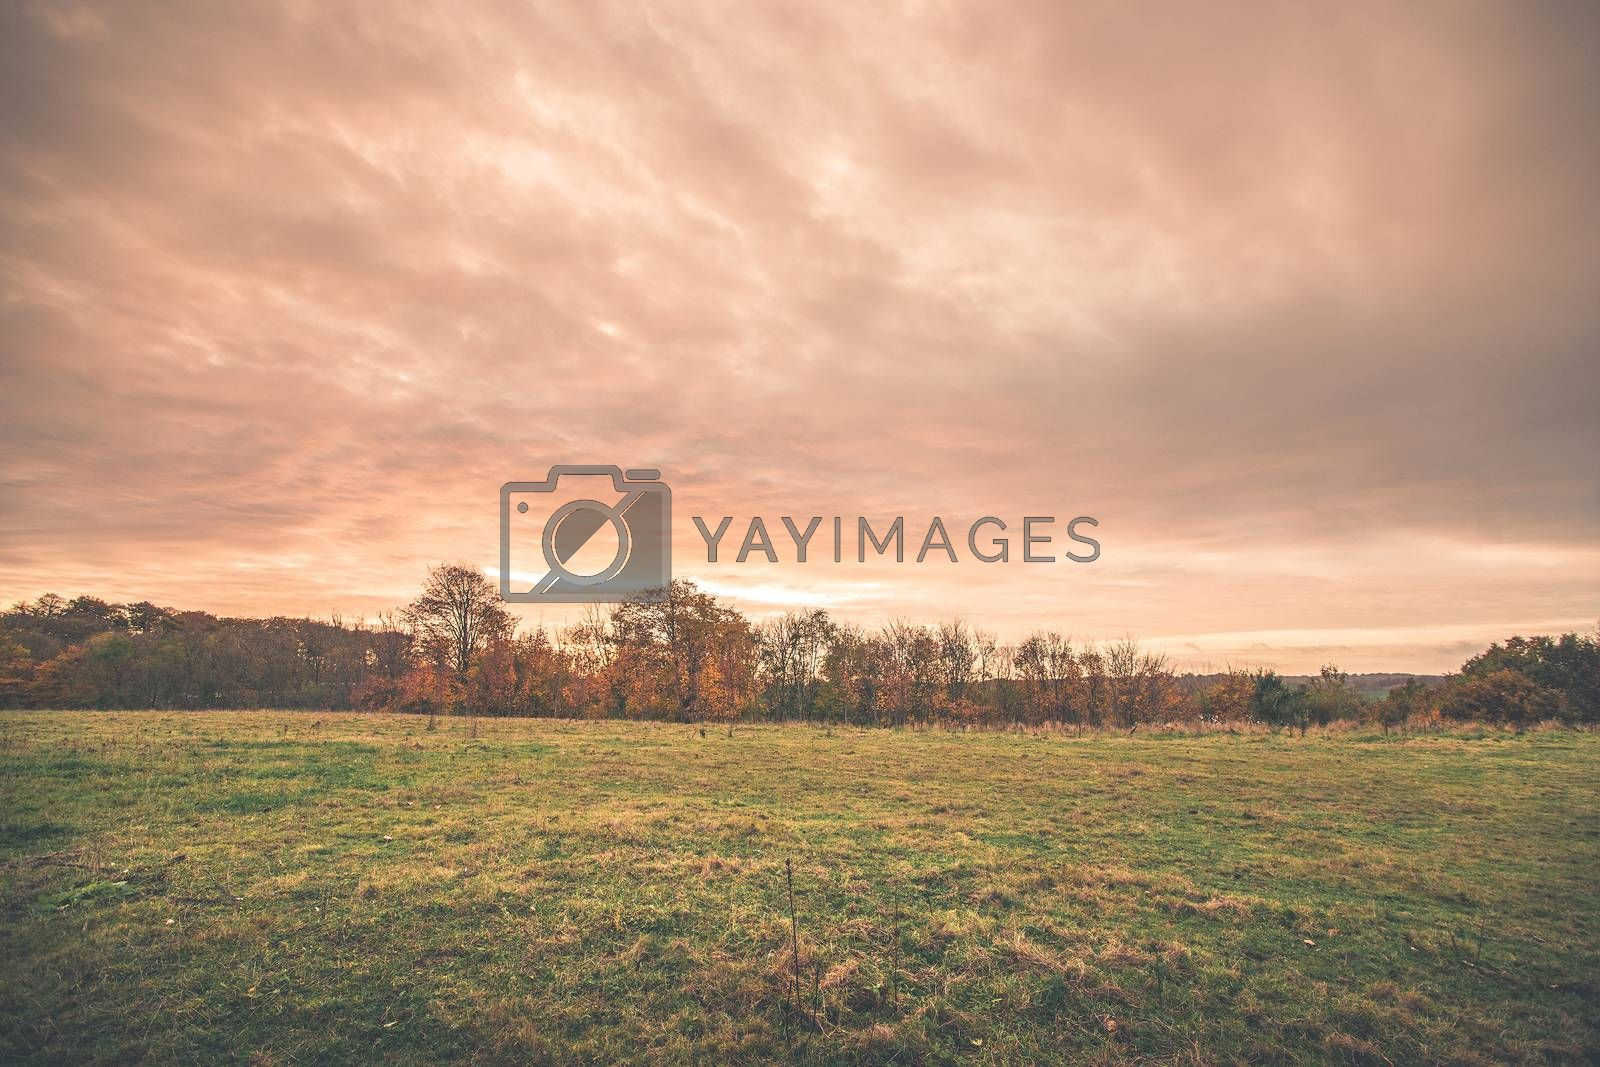 Sunset scenery in a countryside landscape with trees on a field and colorful clouds in the sky